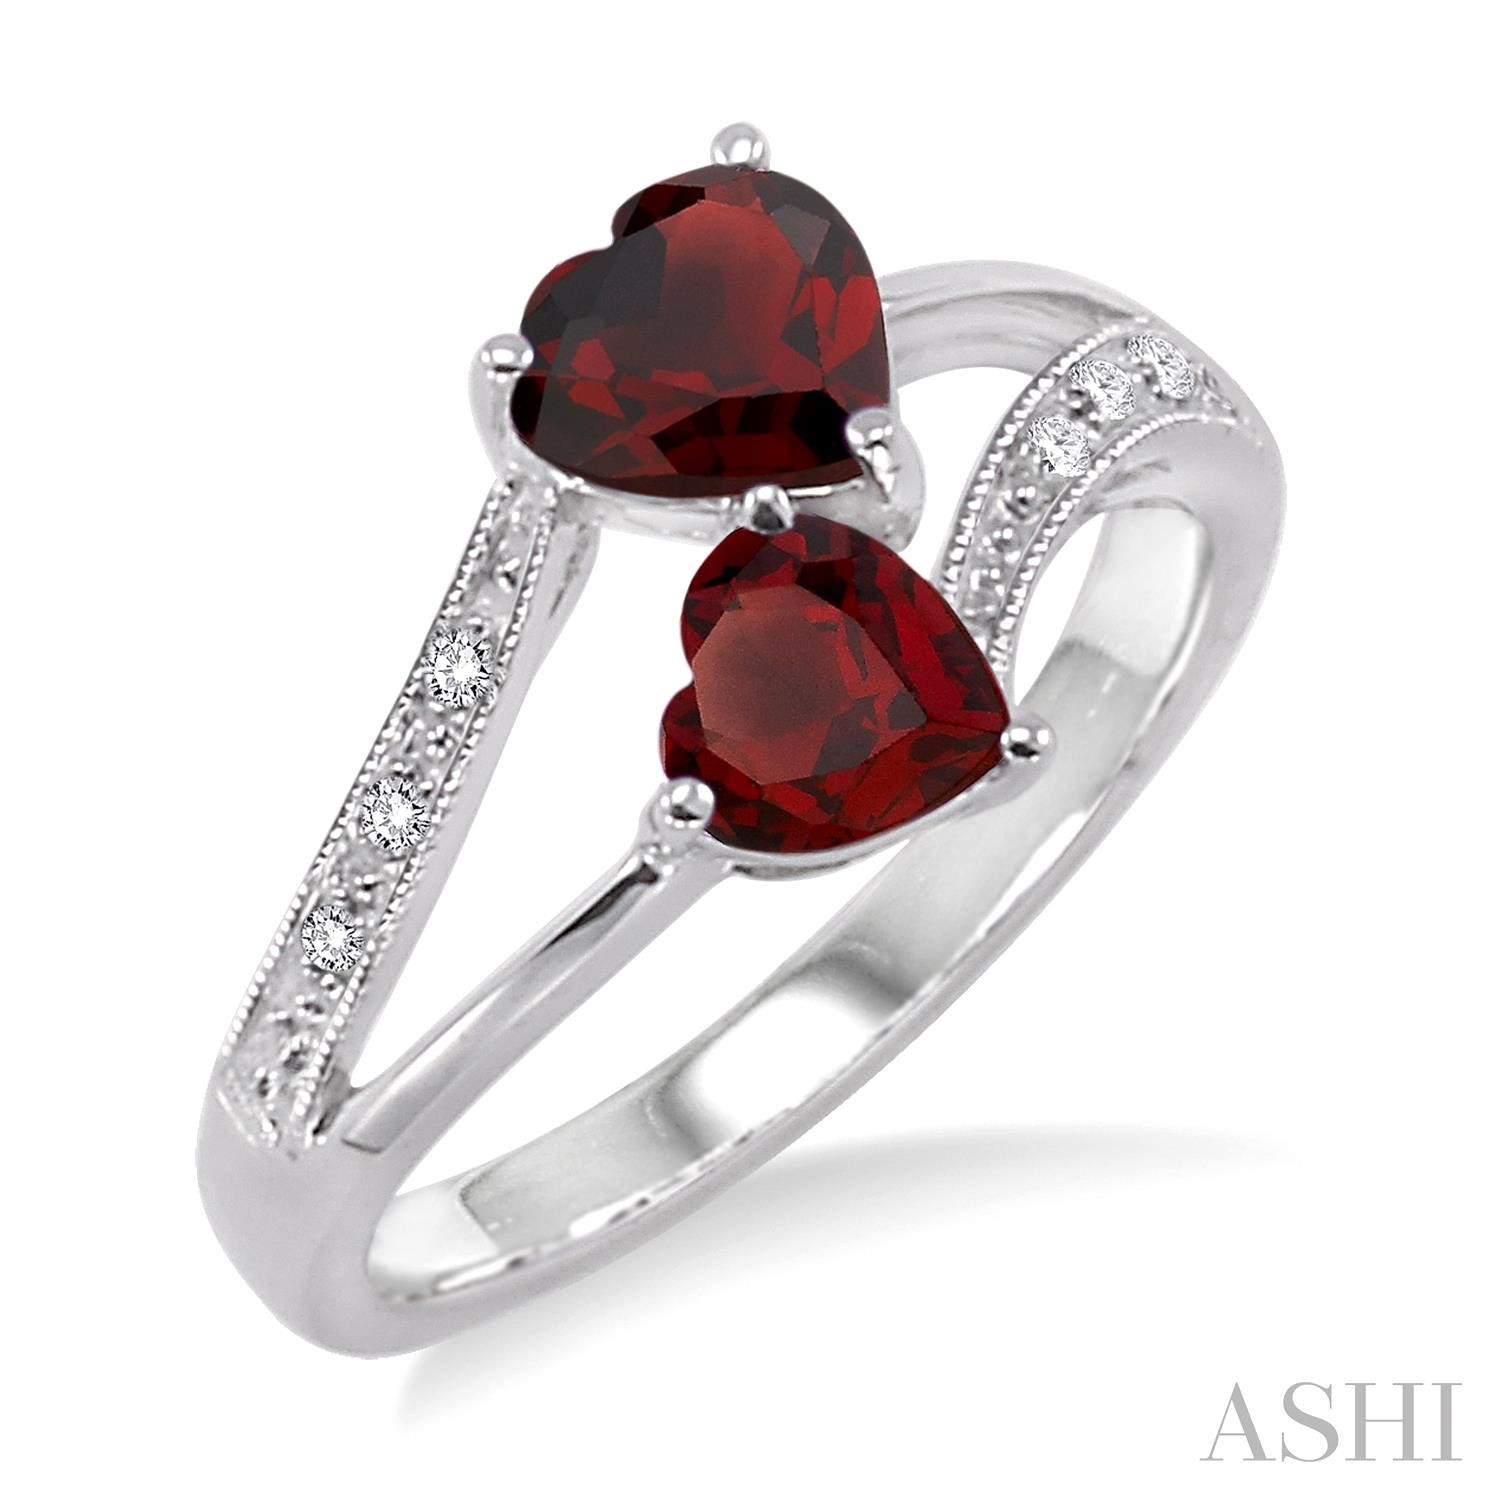 Double Heart Shape Silver Gemstone & Diamond Ring